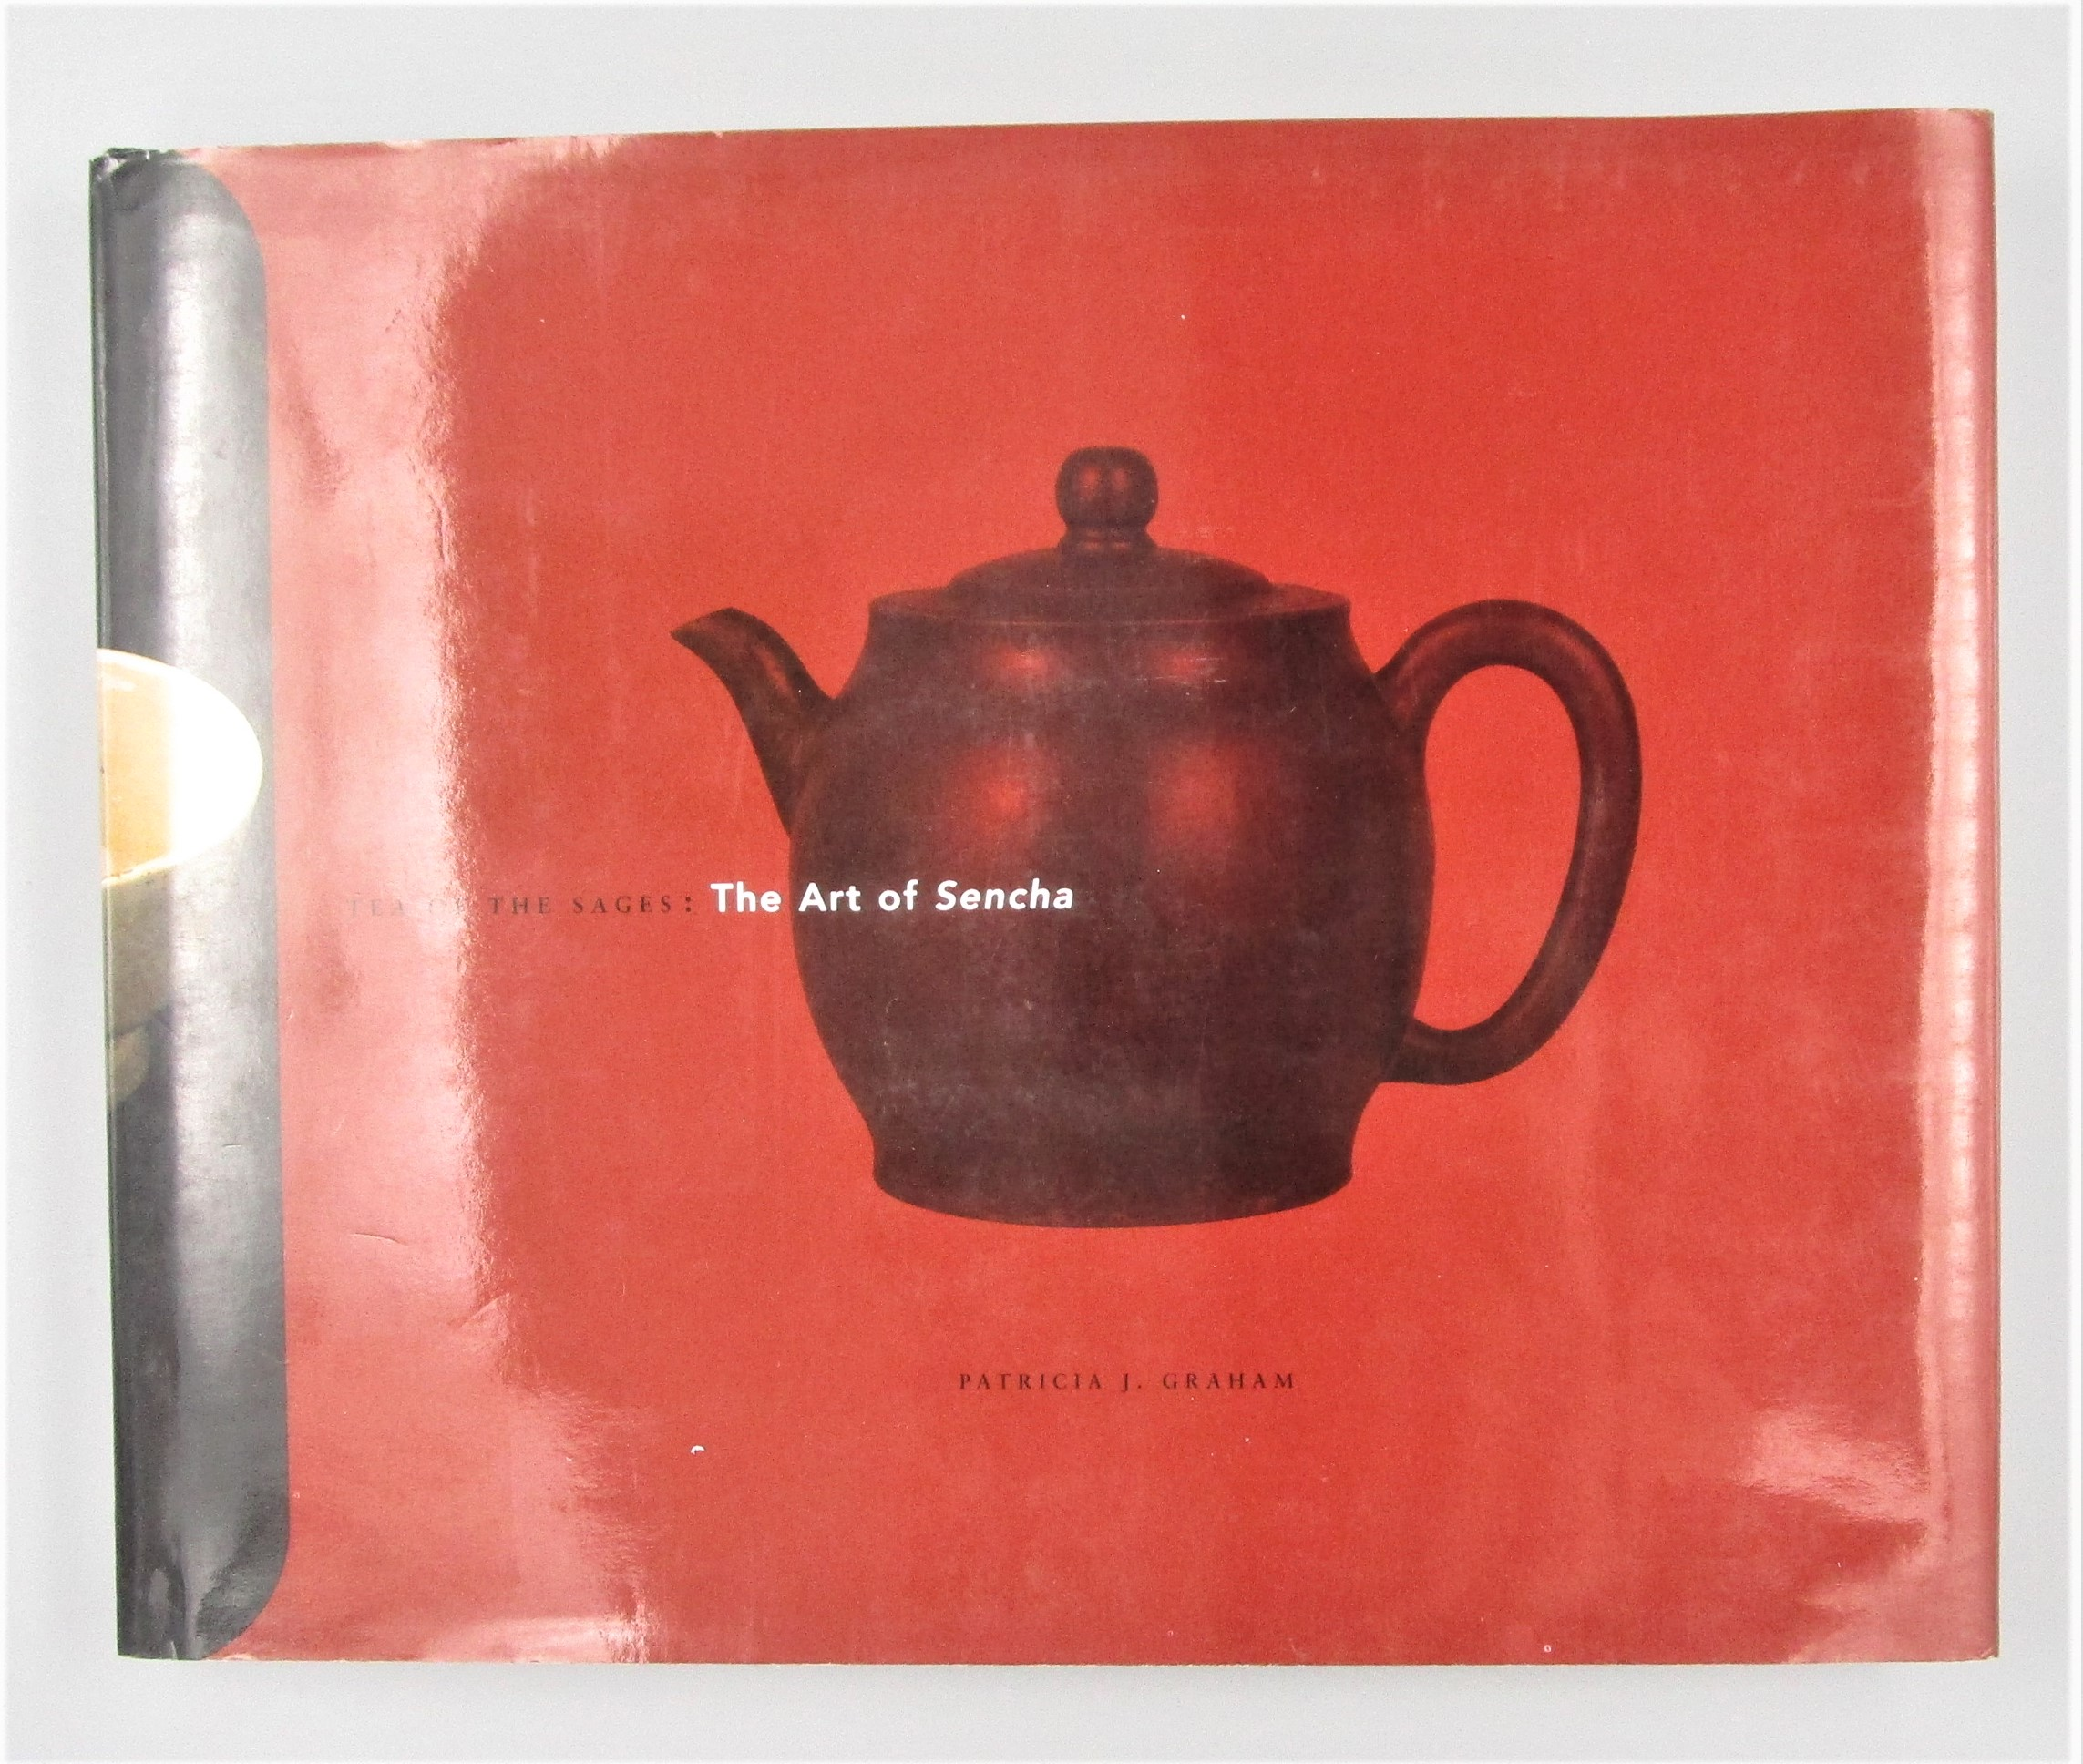 TEA OF THE SAGES: THE ART OF SENCHA, by Patricia J. Graham - 1998